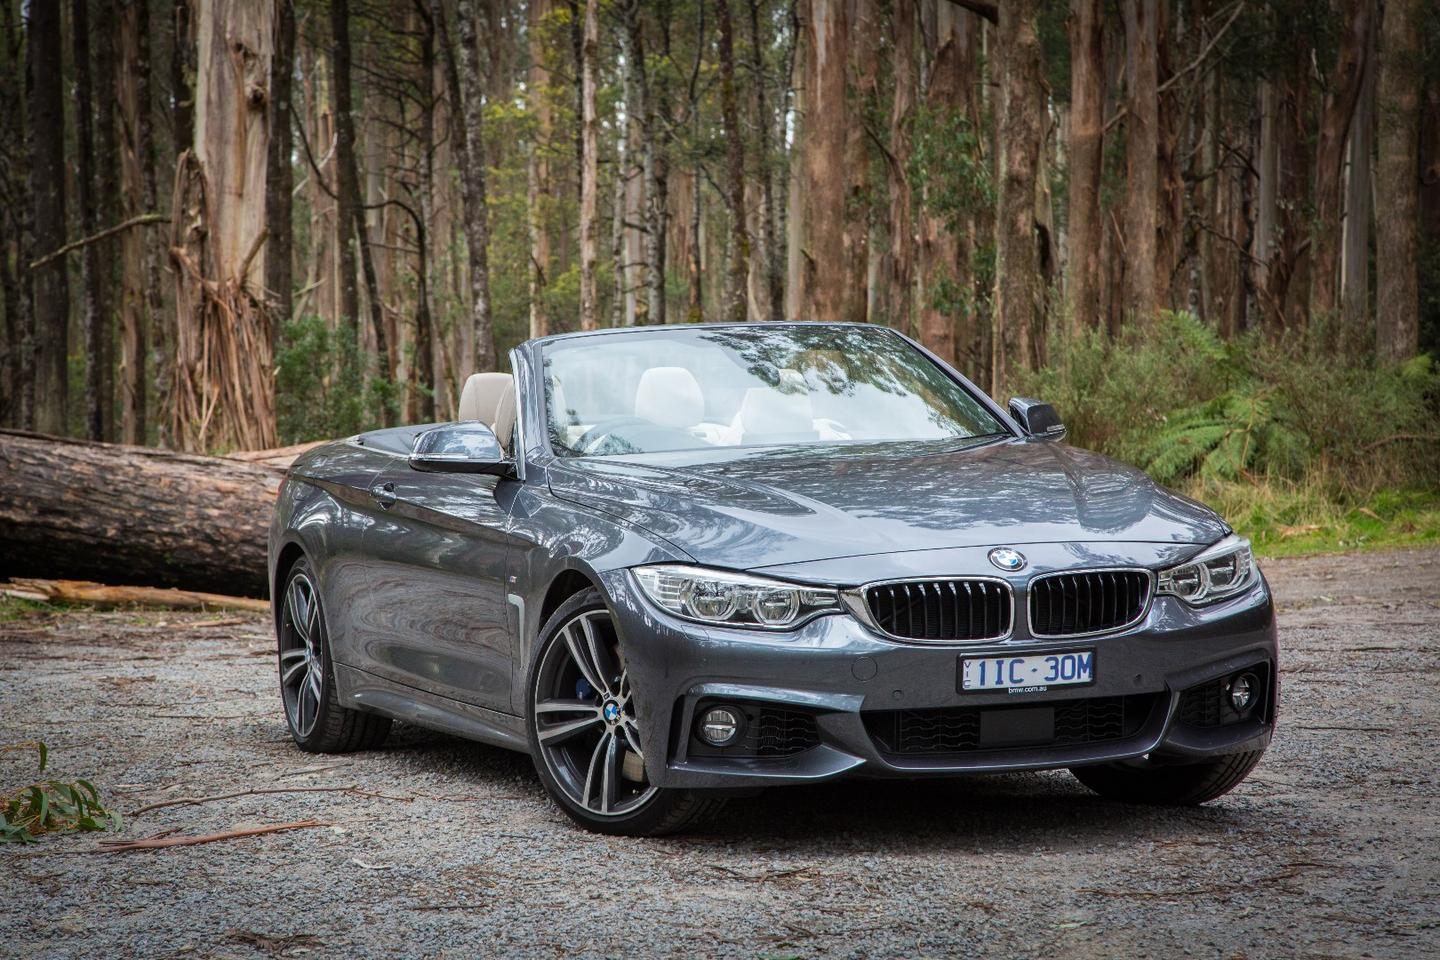 The BMW 440i Convertible is powered by a twin-turbo inline-six